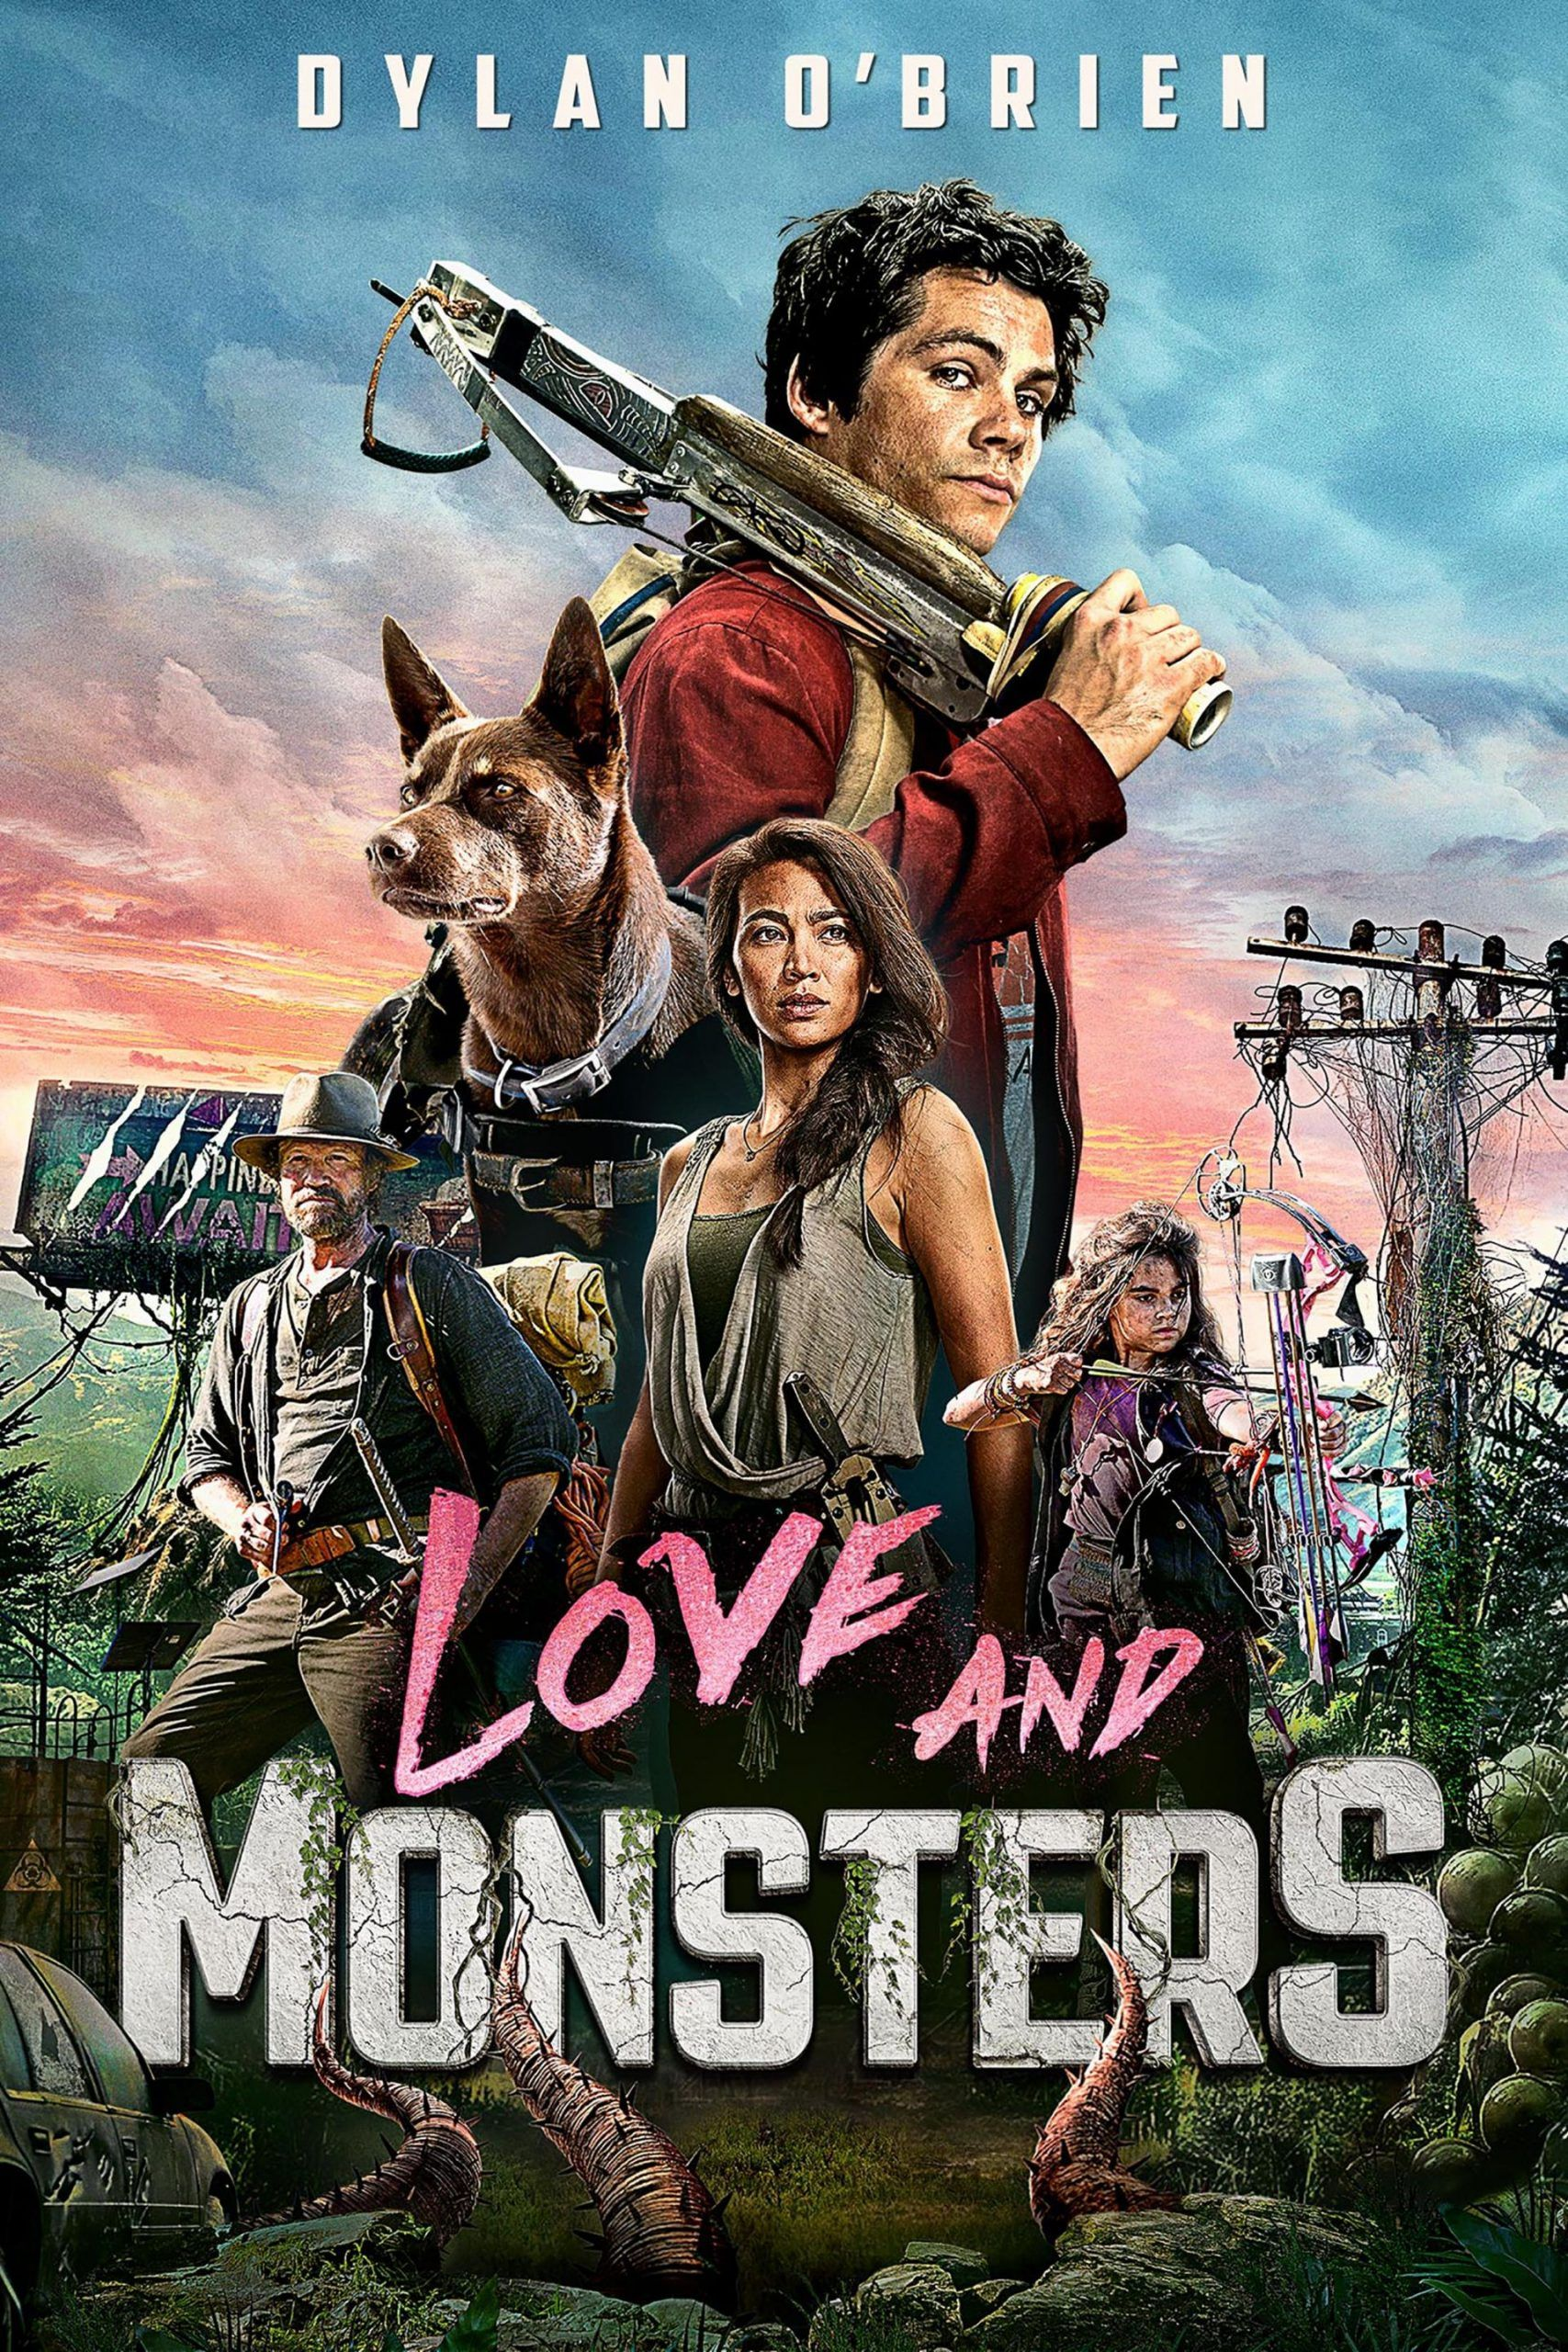 Love And Monsters Movie Review Not The Monster Movie You Might Expect Dylan O Brien Movies Dylan O Brien Movie Monsters